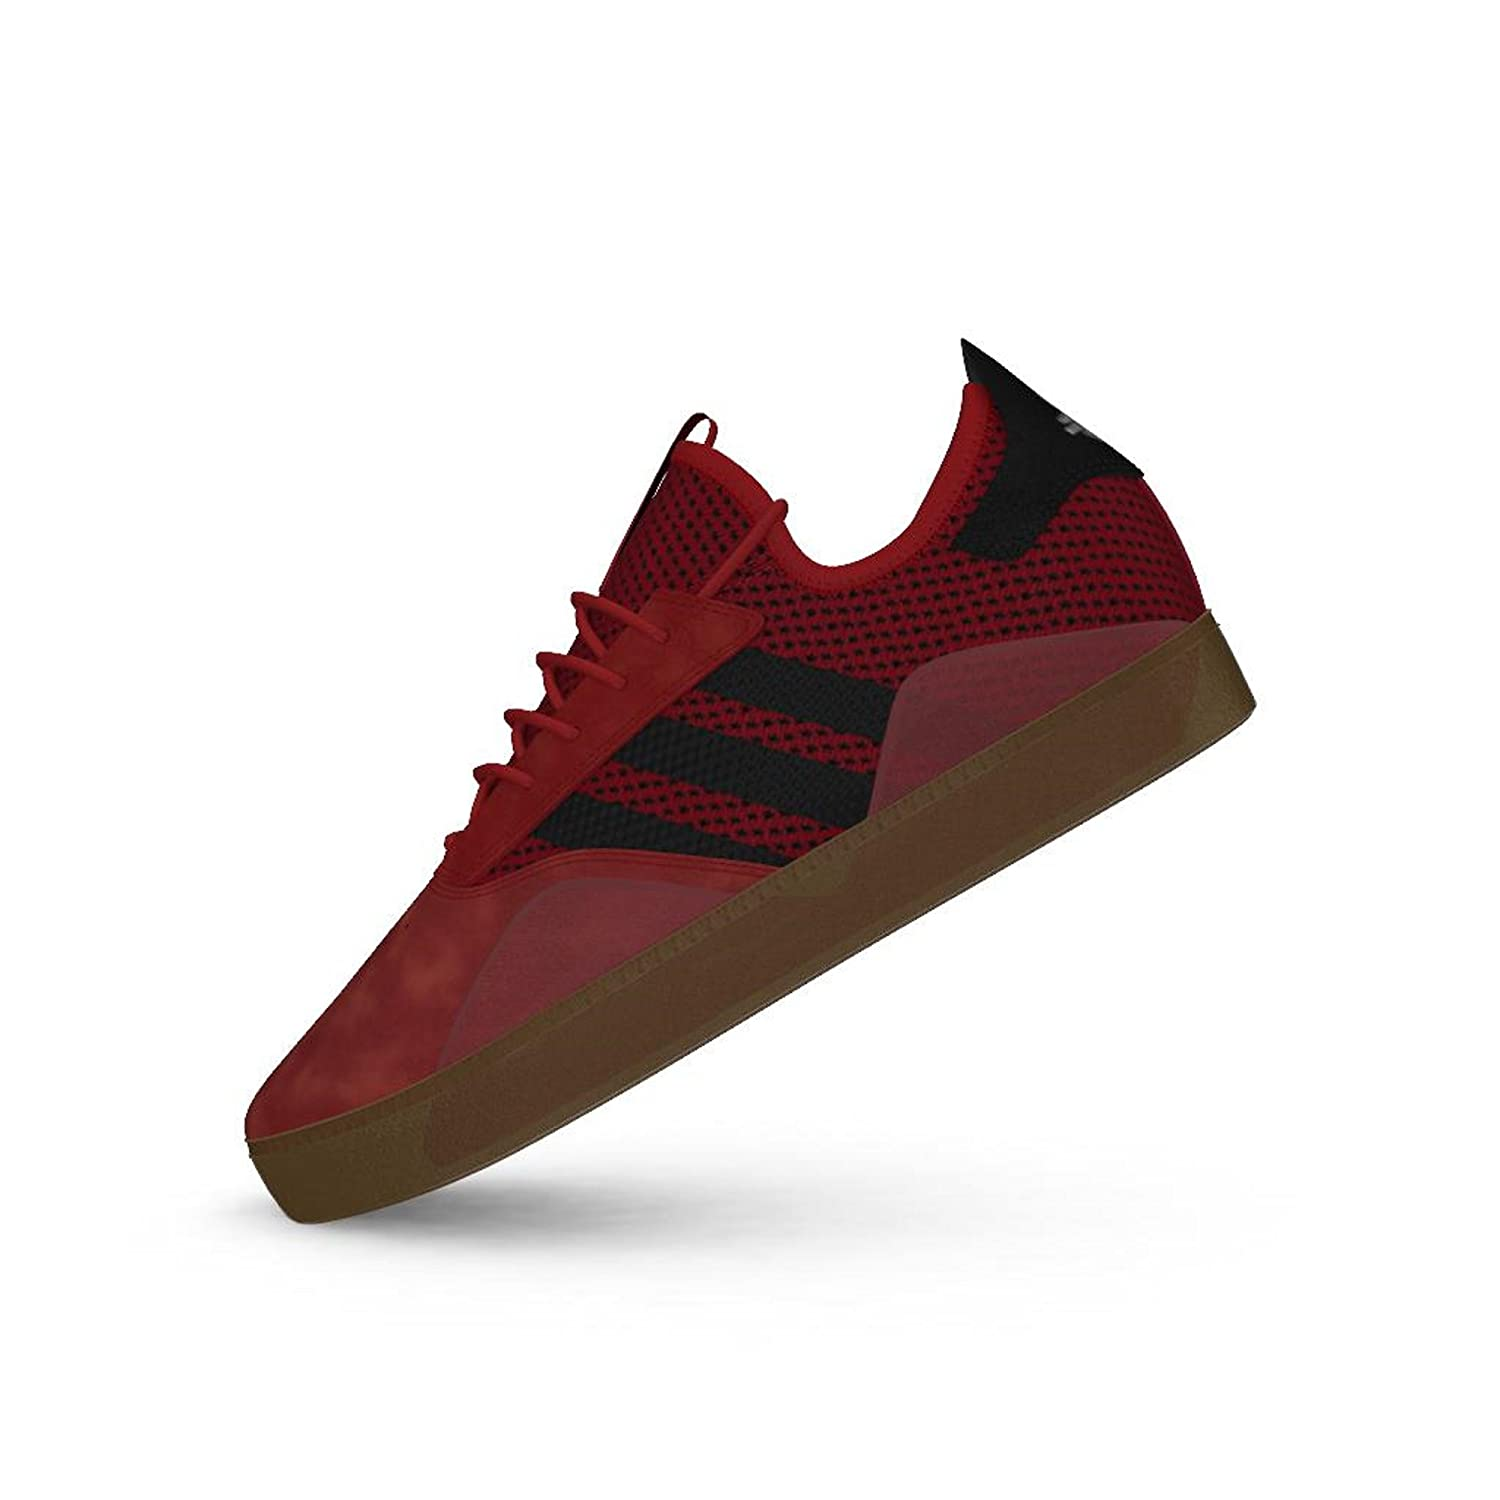 premium selection 6b42c 78c90 adidas Skateboarding 3ST.001, Scarlet-Core Black-Gum Amazon.fr Chaussures  et Sacs